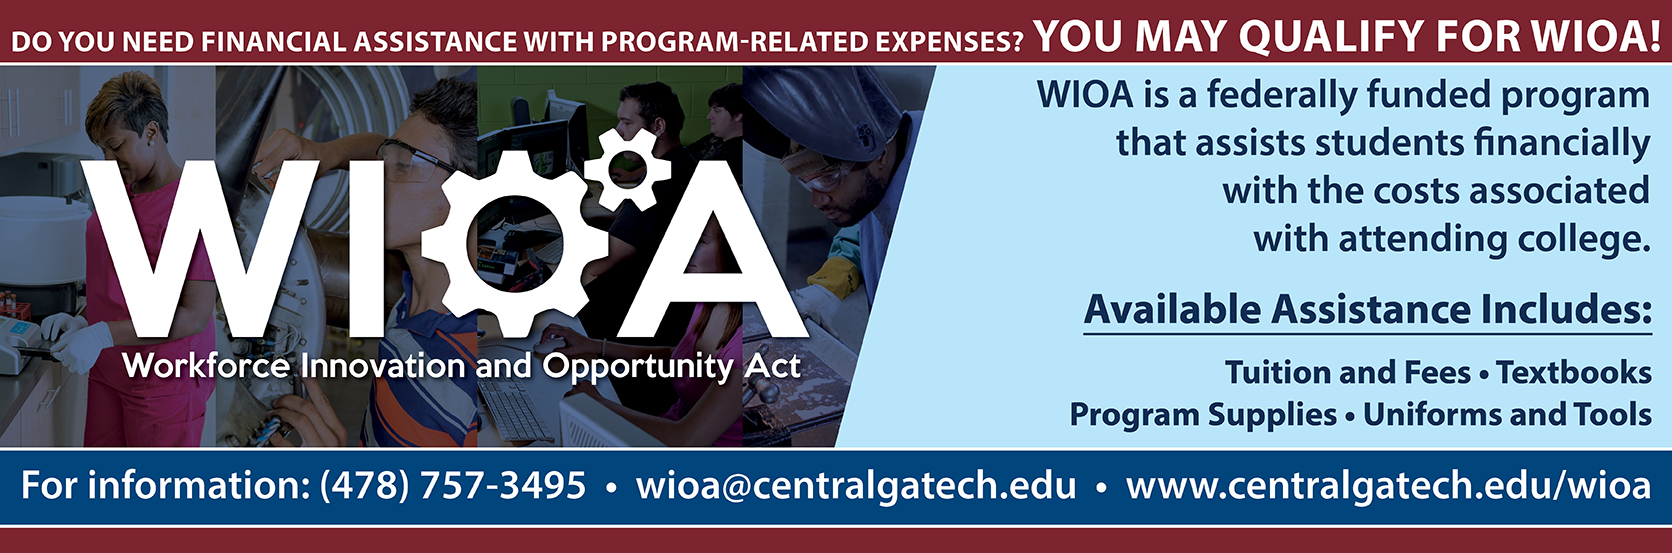 Do you need financial assistance with program-related expenses? You may qualify for WIOA!